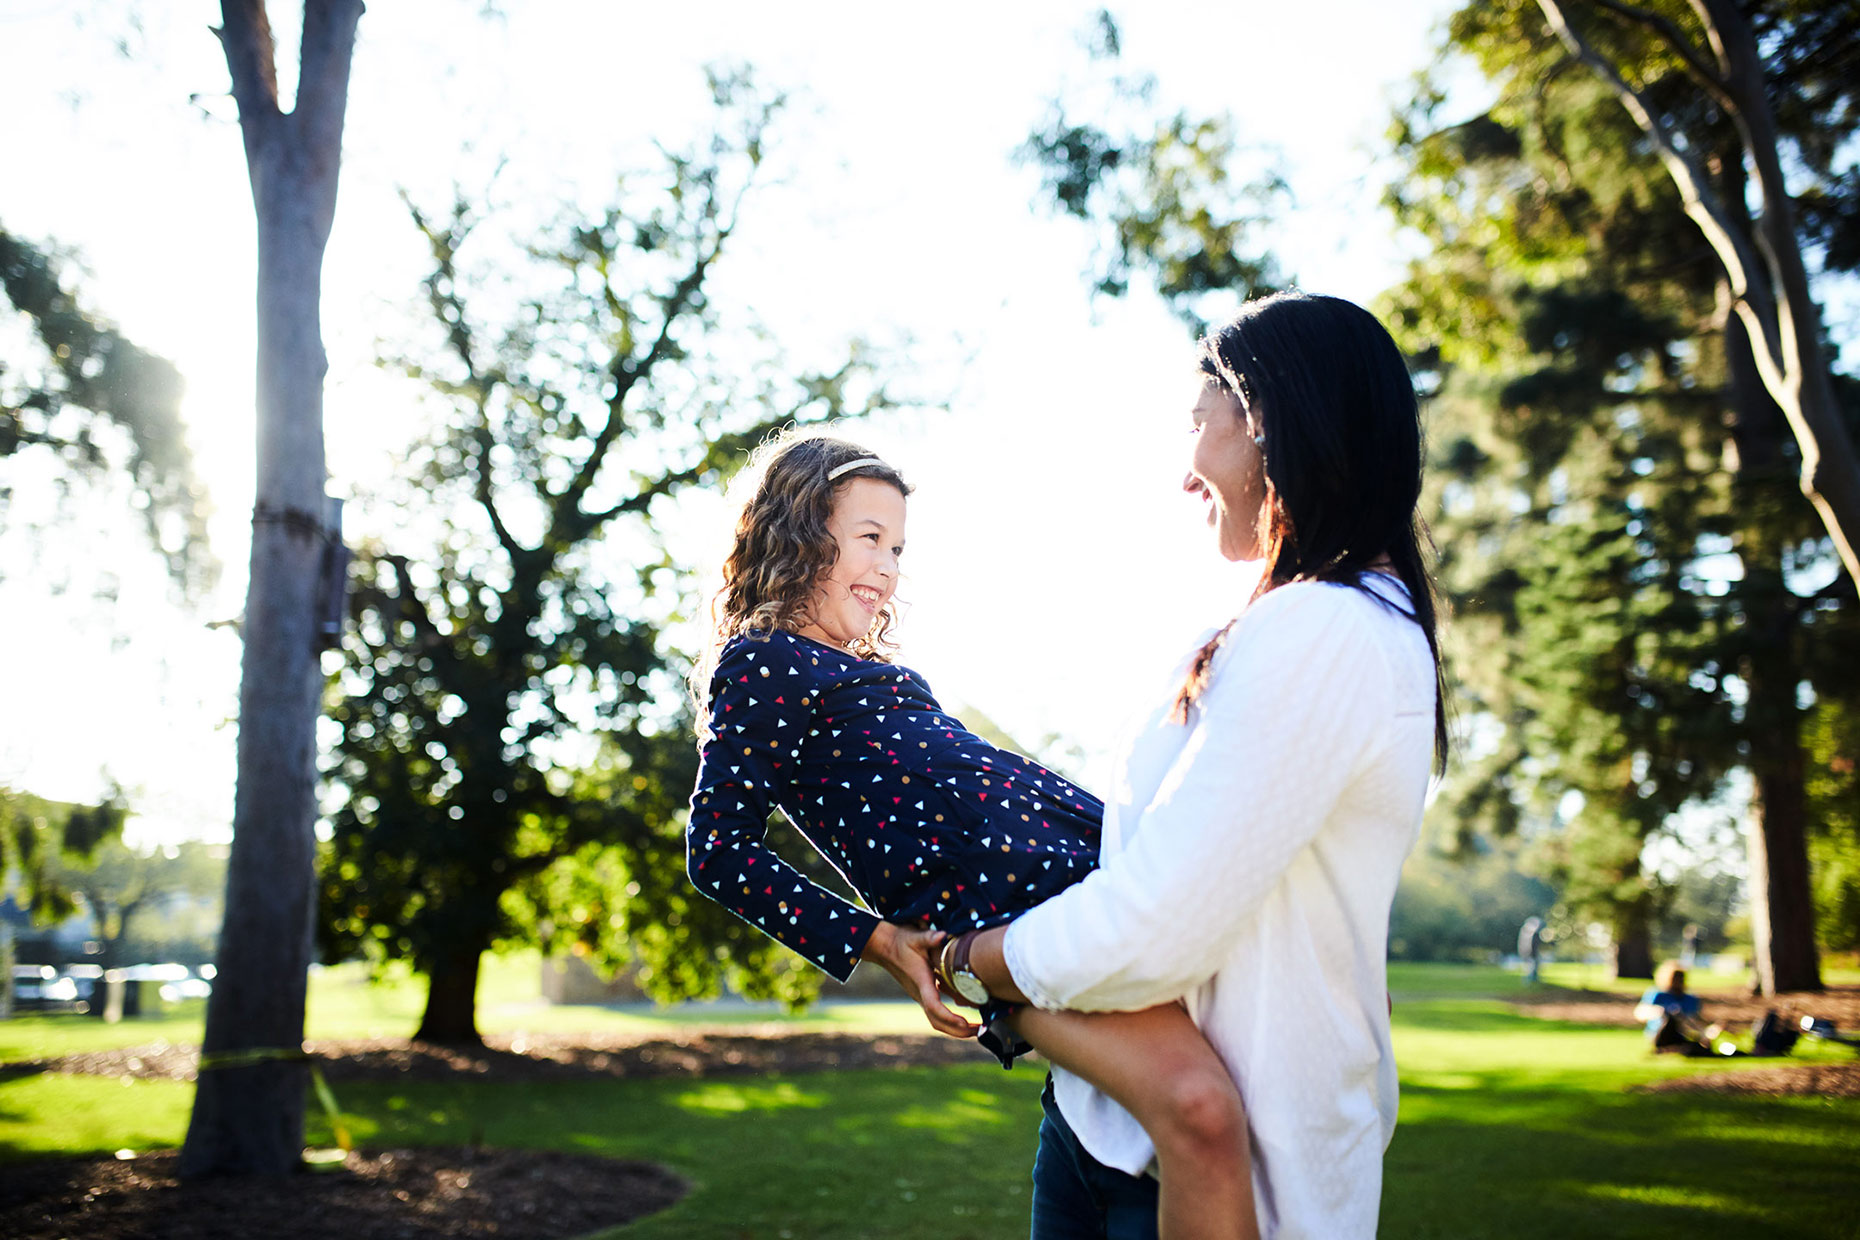 Mother and daughter in St Kilda Gardens